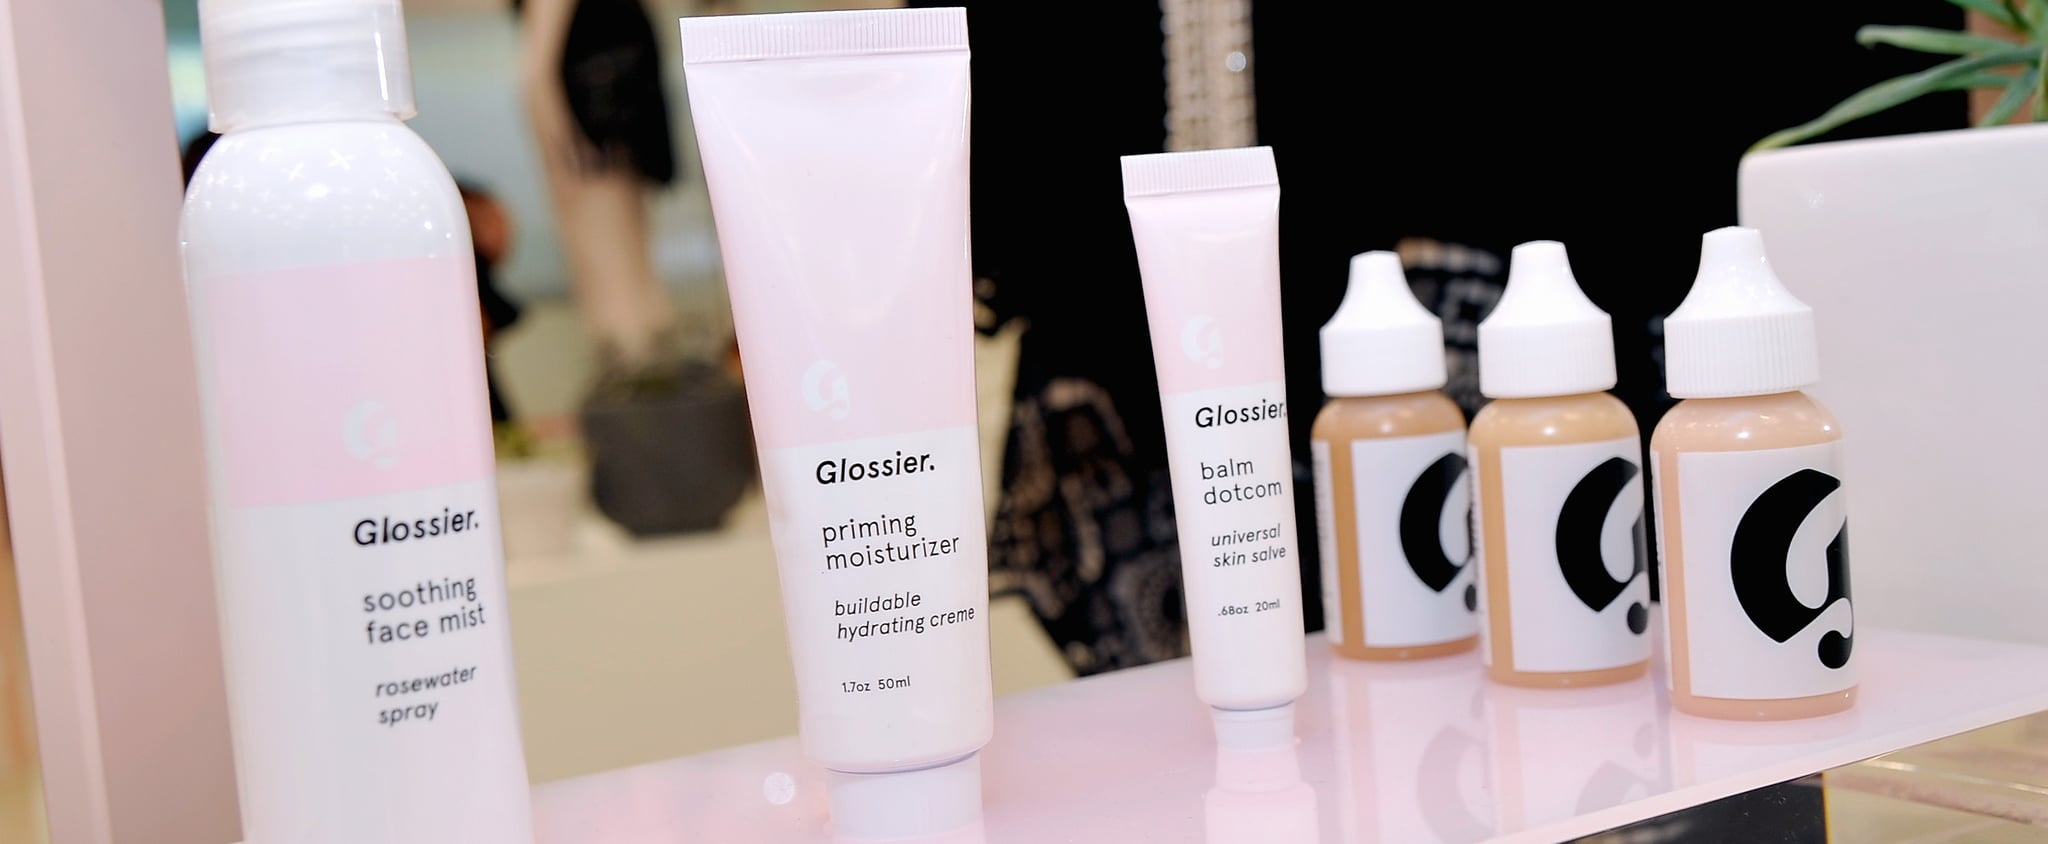 Glossier Donates $1 Million to Black Lives Matter and More